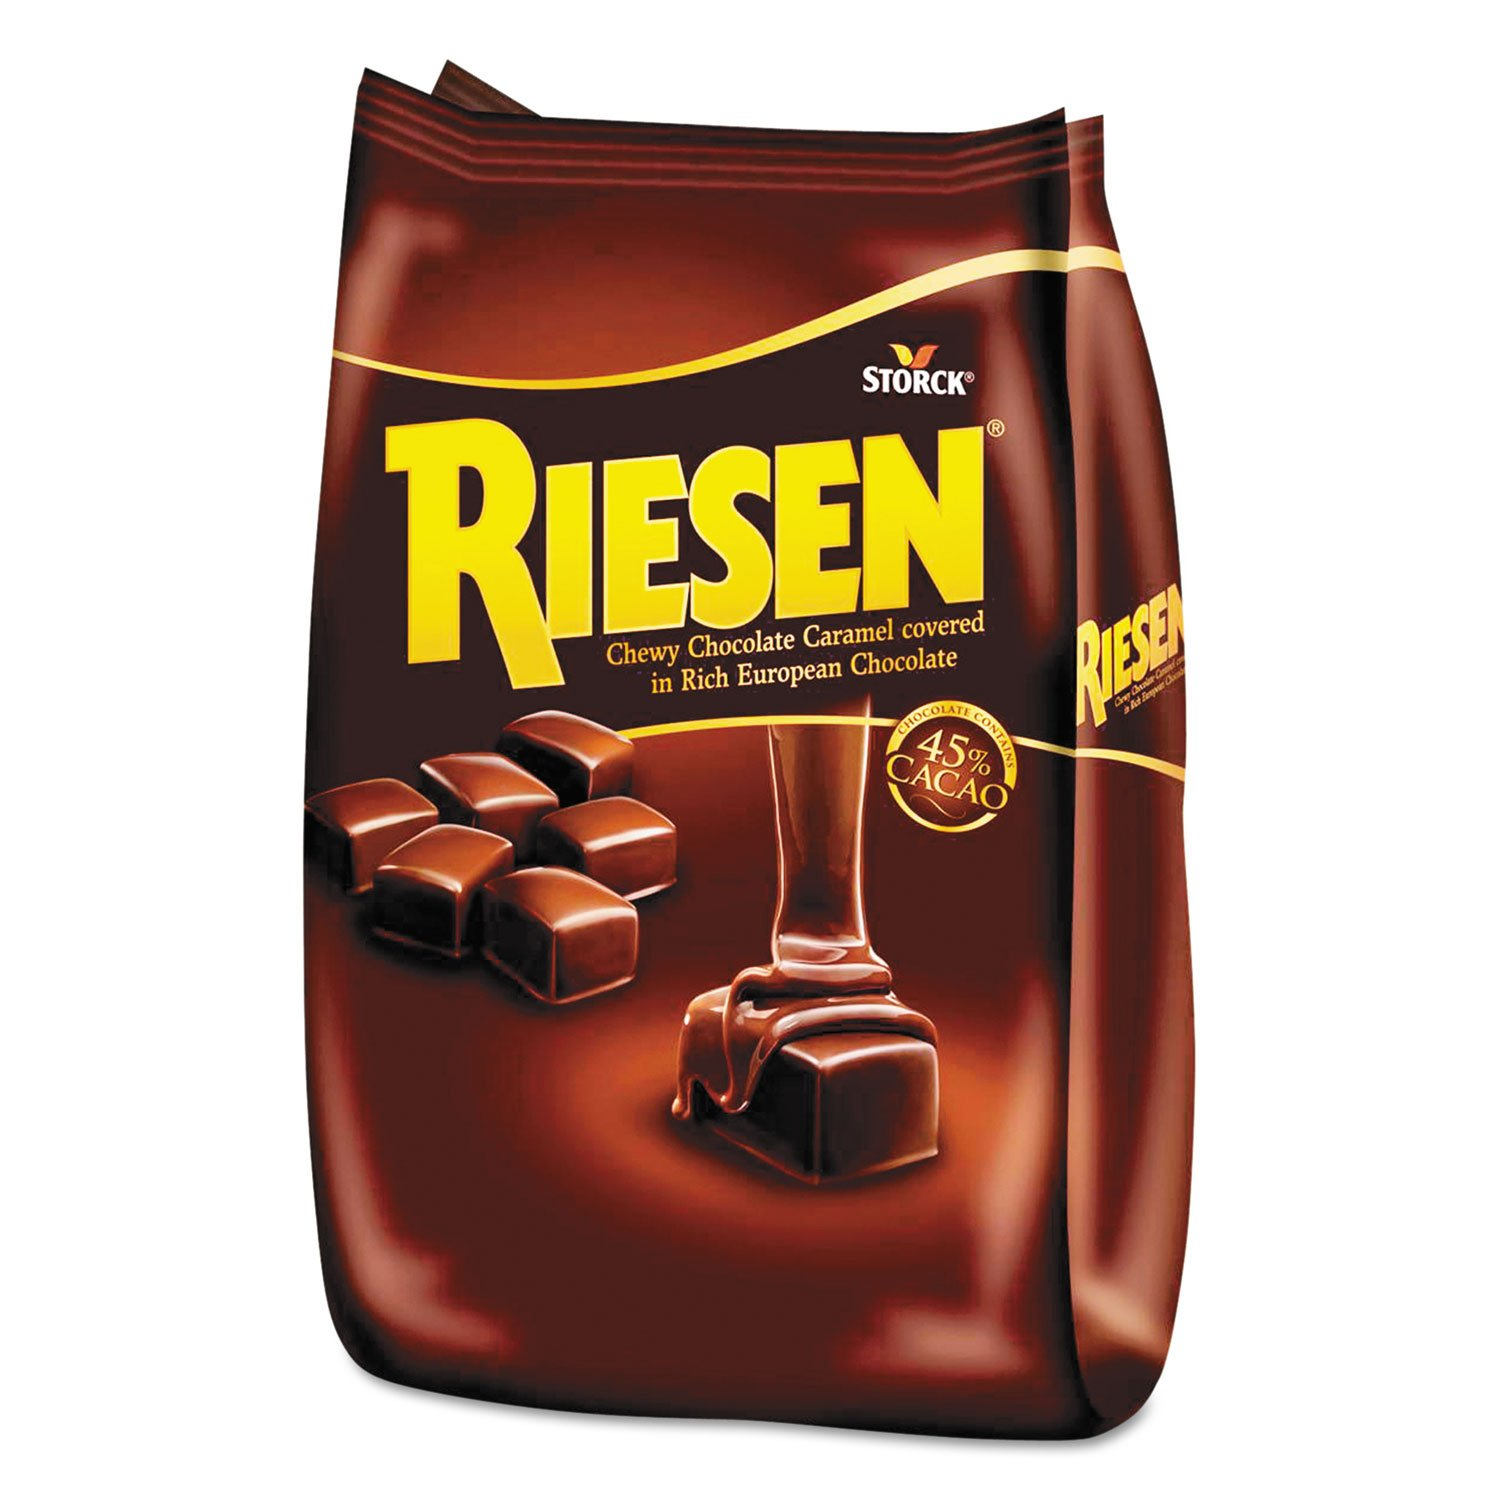 Riesen Chewy Chocolate Caramel Covered in Rich European Chocolate, 30oz Bag by Riesen